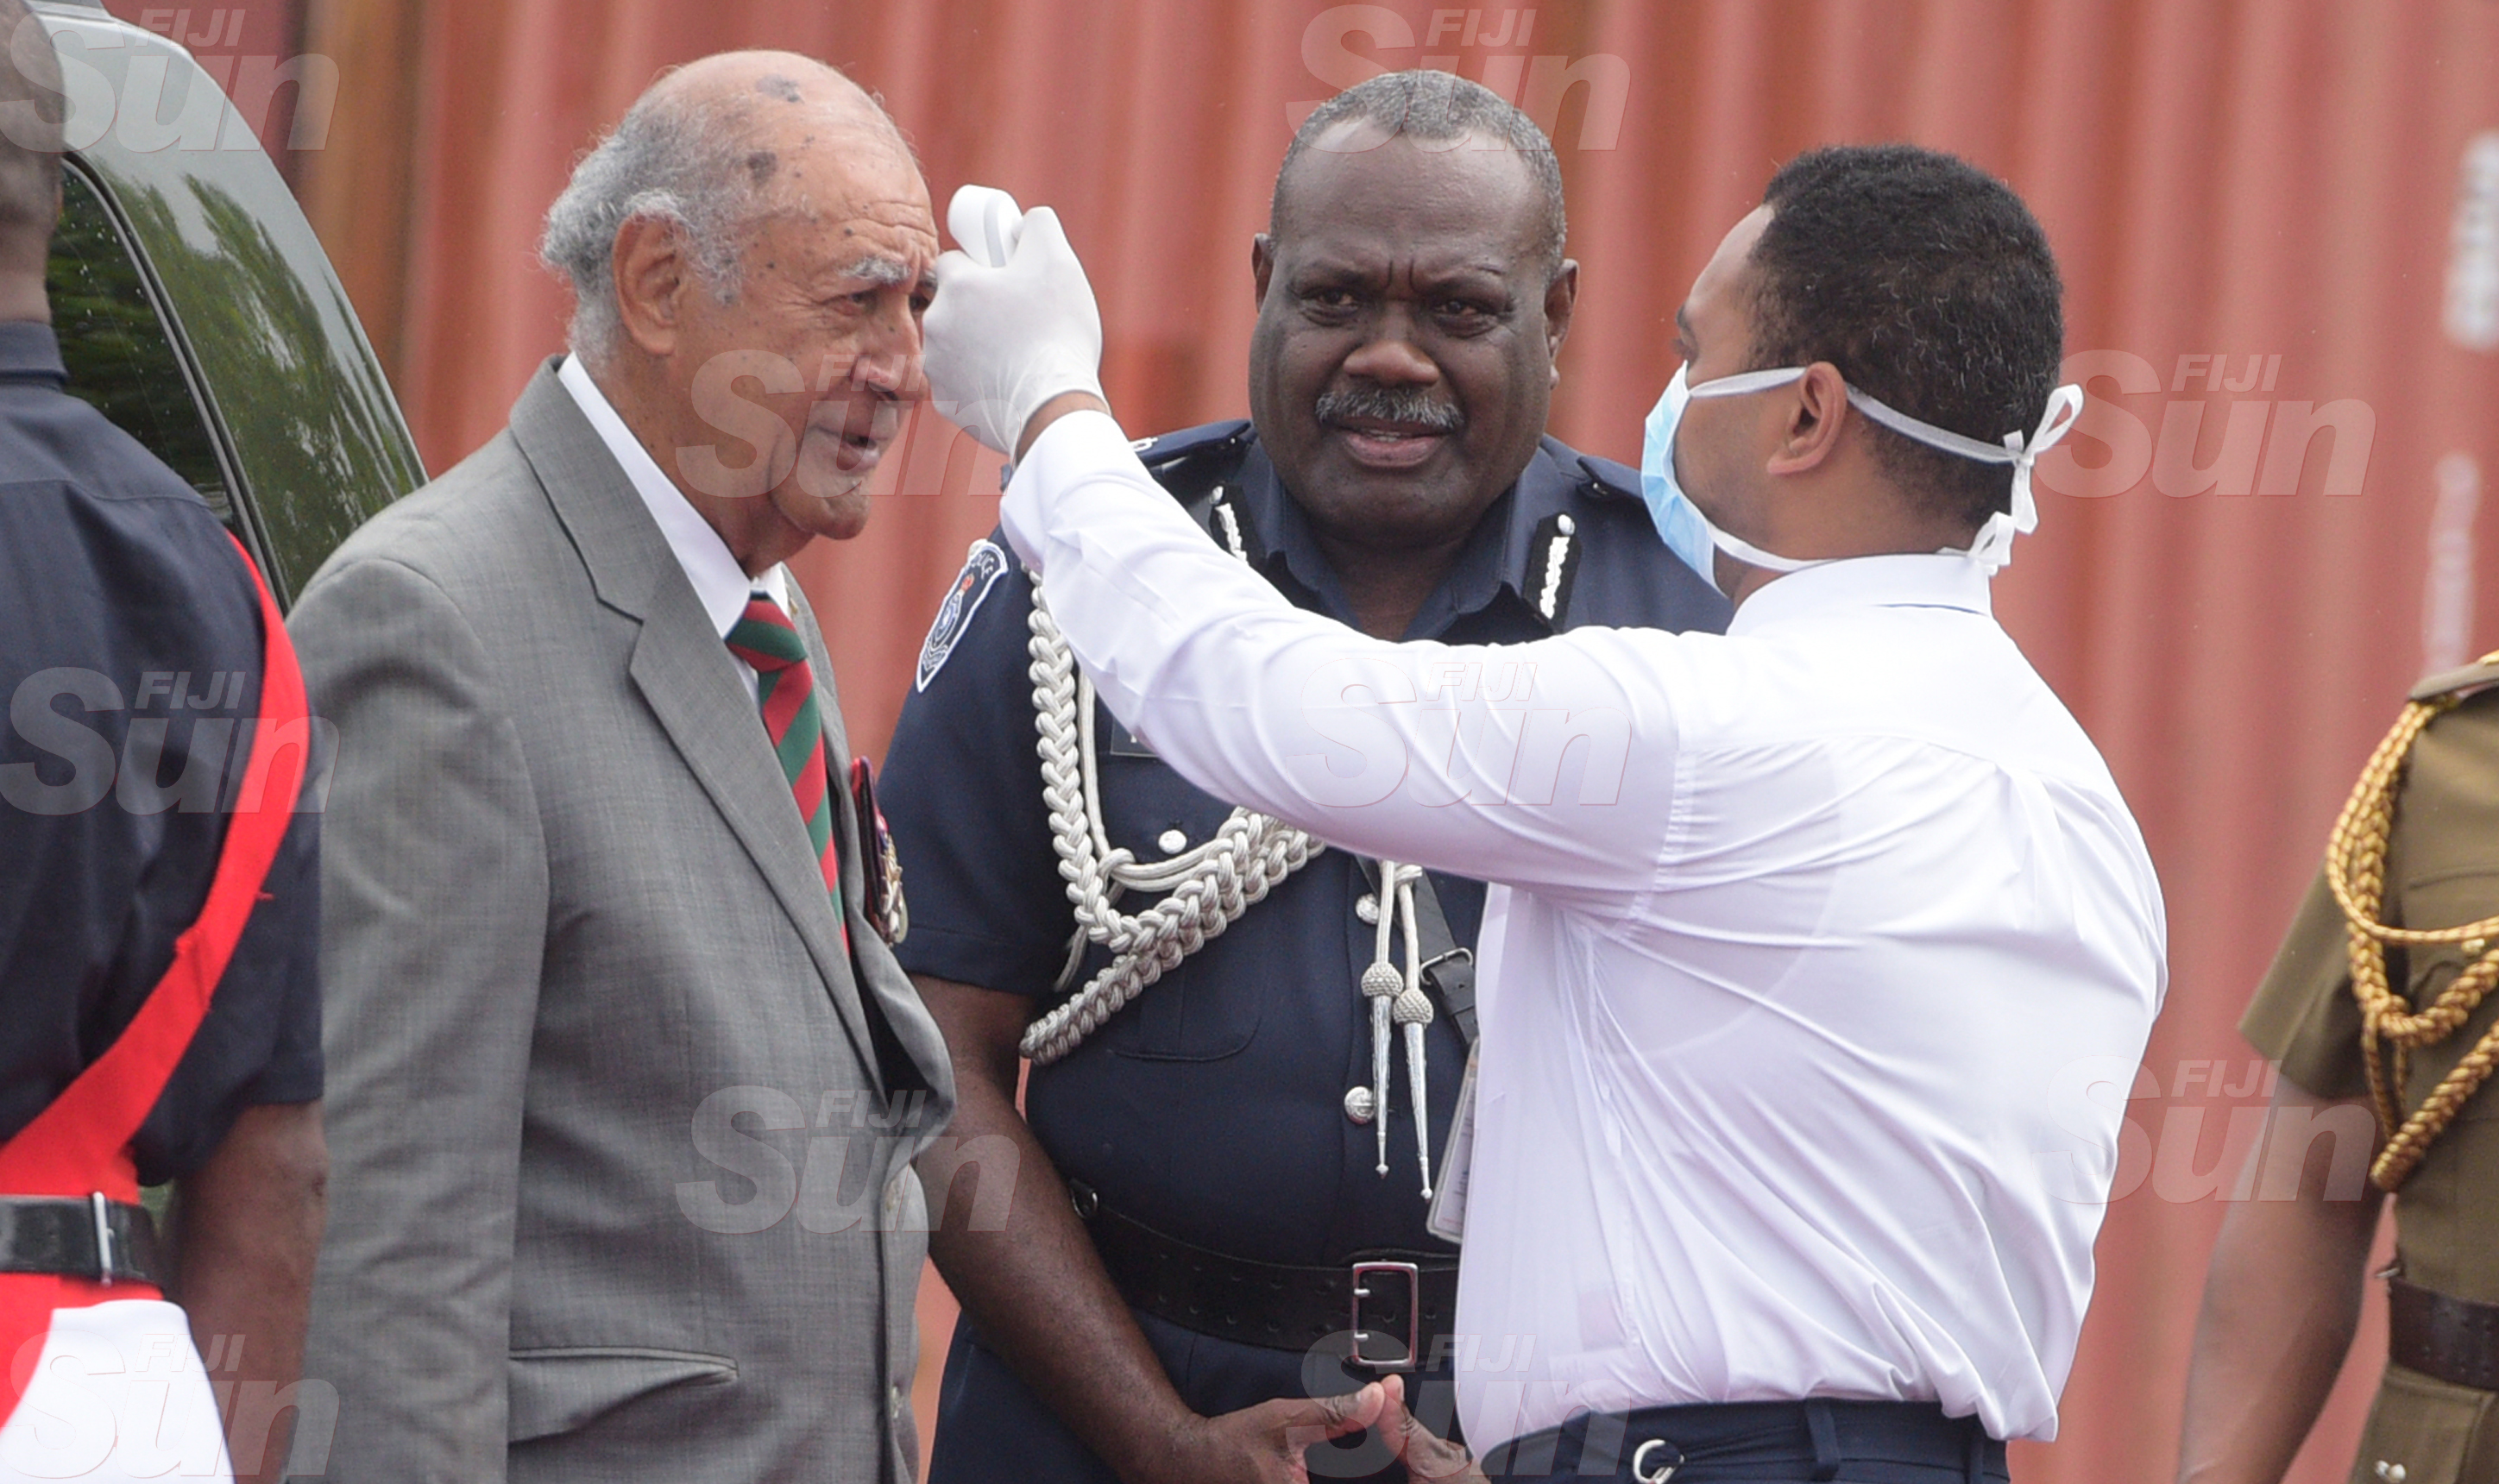 Speaker of Parliament Ratu Epeli Nailatikau gets his temperature checked as Police Commissioner Rusiate Tudravu looks on during Police Remembrance Day ceremony at Police Special Response Unit on September 29, 2020. Photo: Ronald Kumar